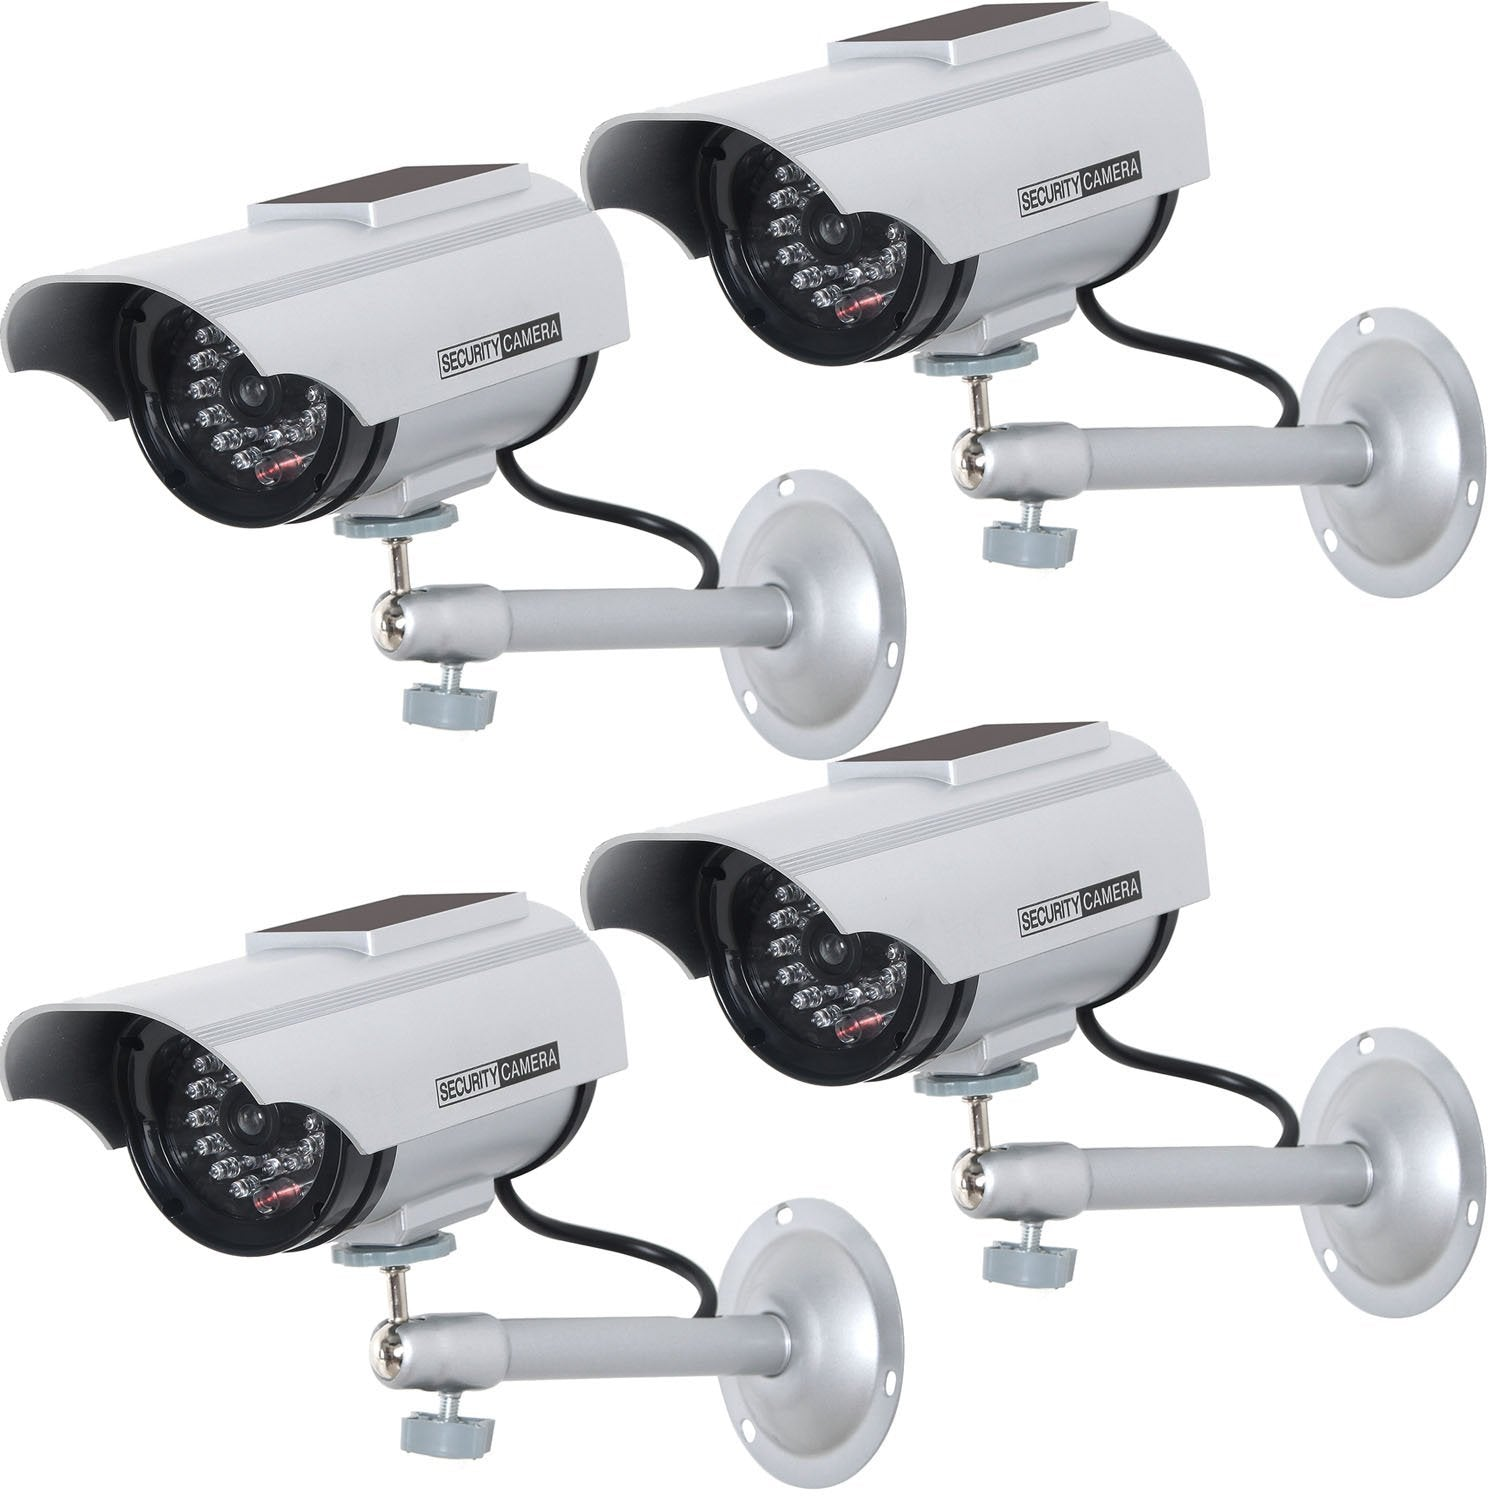 Silver Indoor Outdoor Fake Dummy Security Surveillance Camera with 30 Blinking LED Lights /& Warning Security Alert Sticker